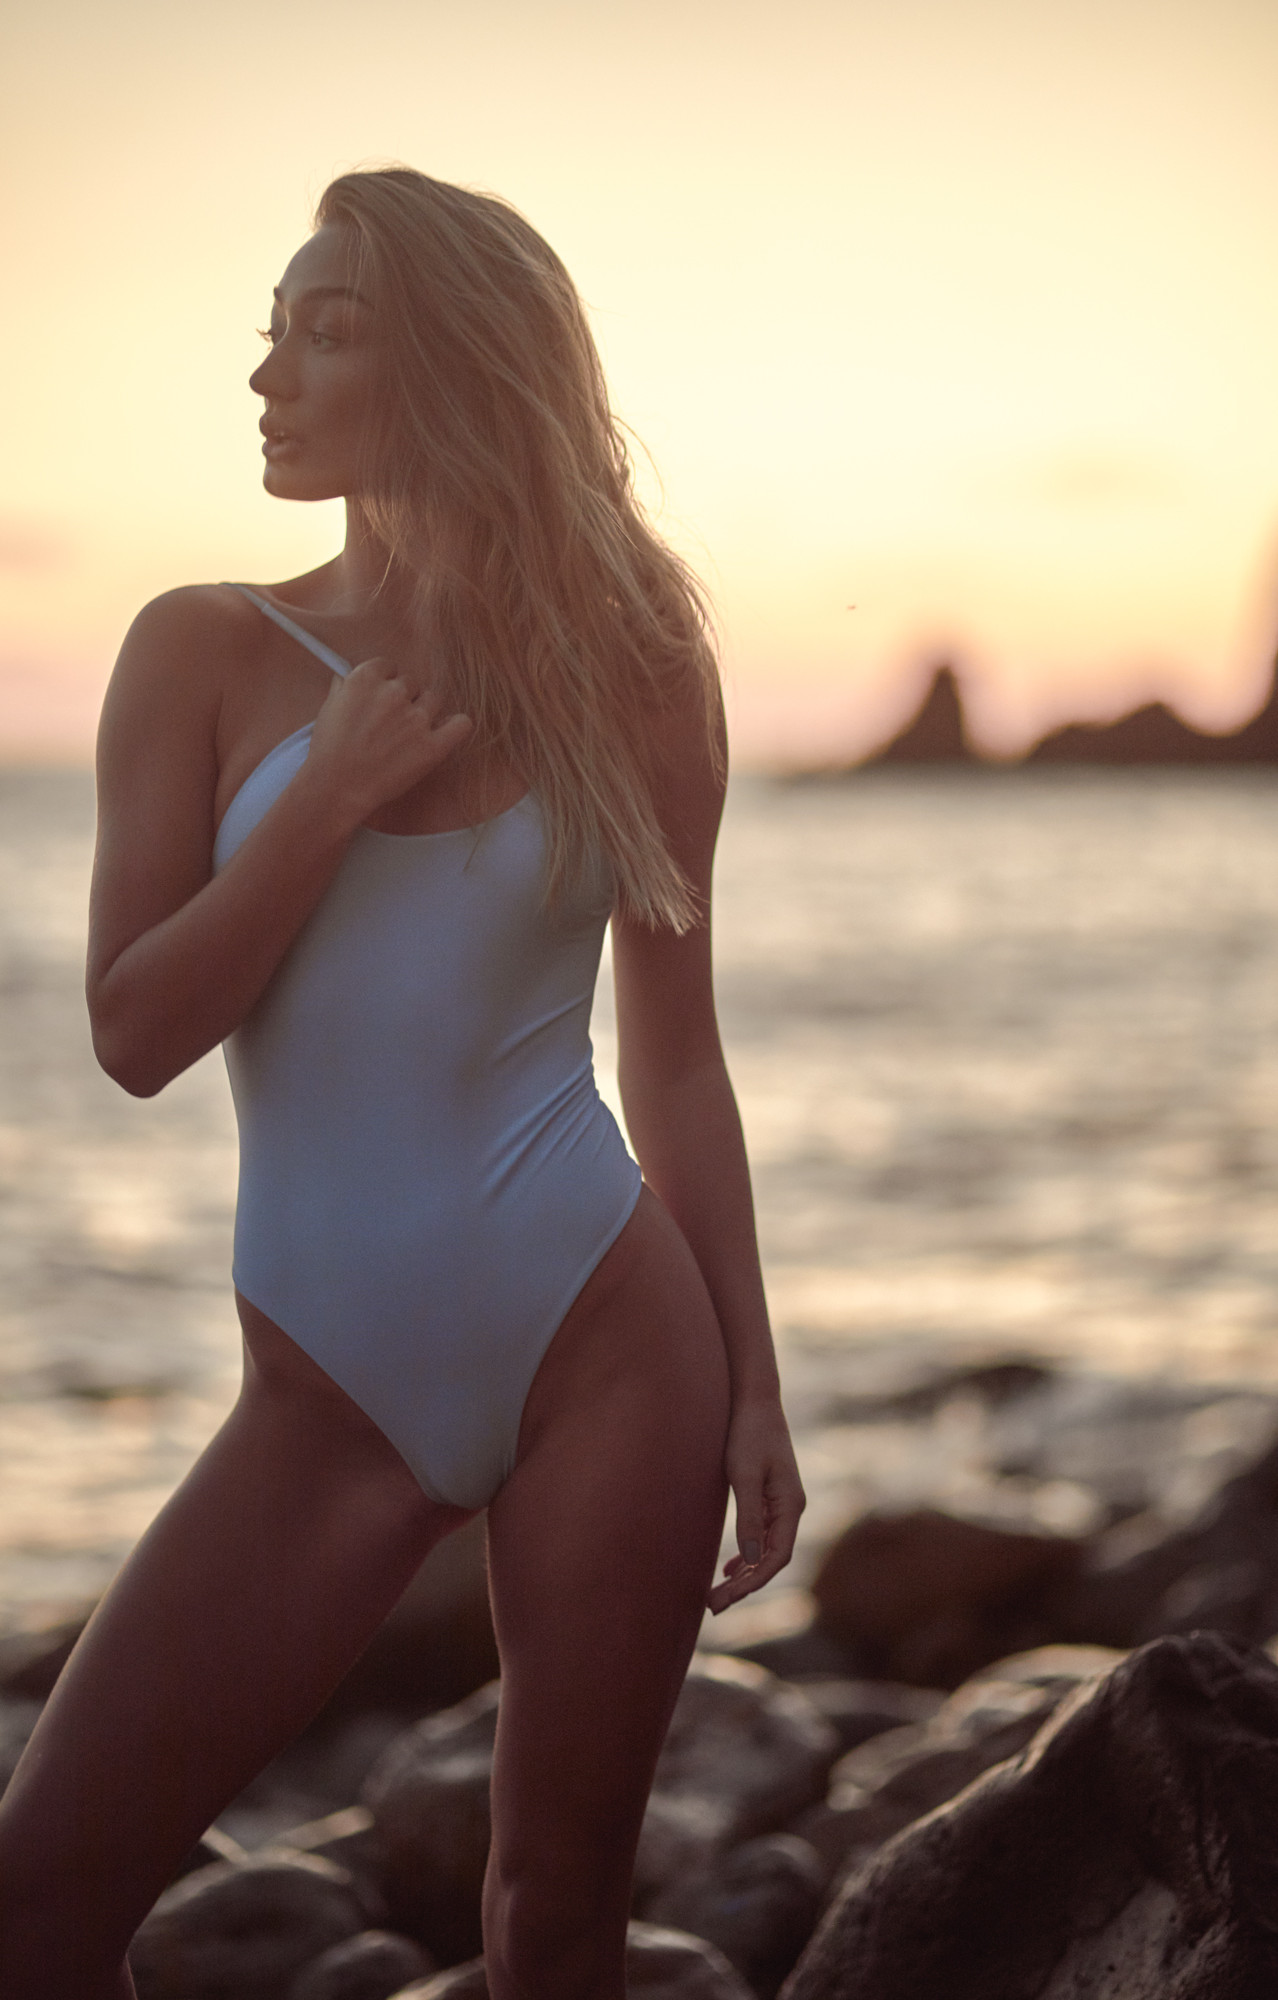 Patrick Patton photography photographs model Bethan Sowerby in a powder blue one piece swimsuit by Kulani Kinis in Malibu